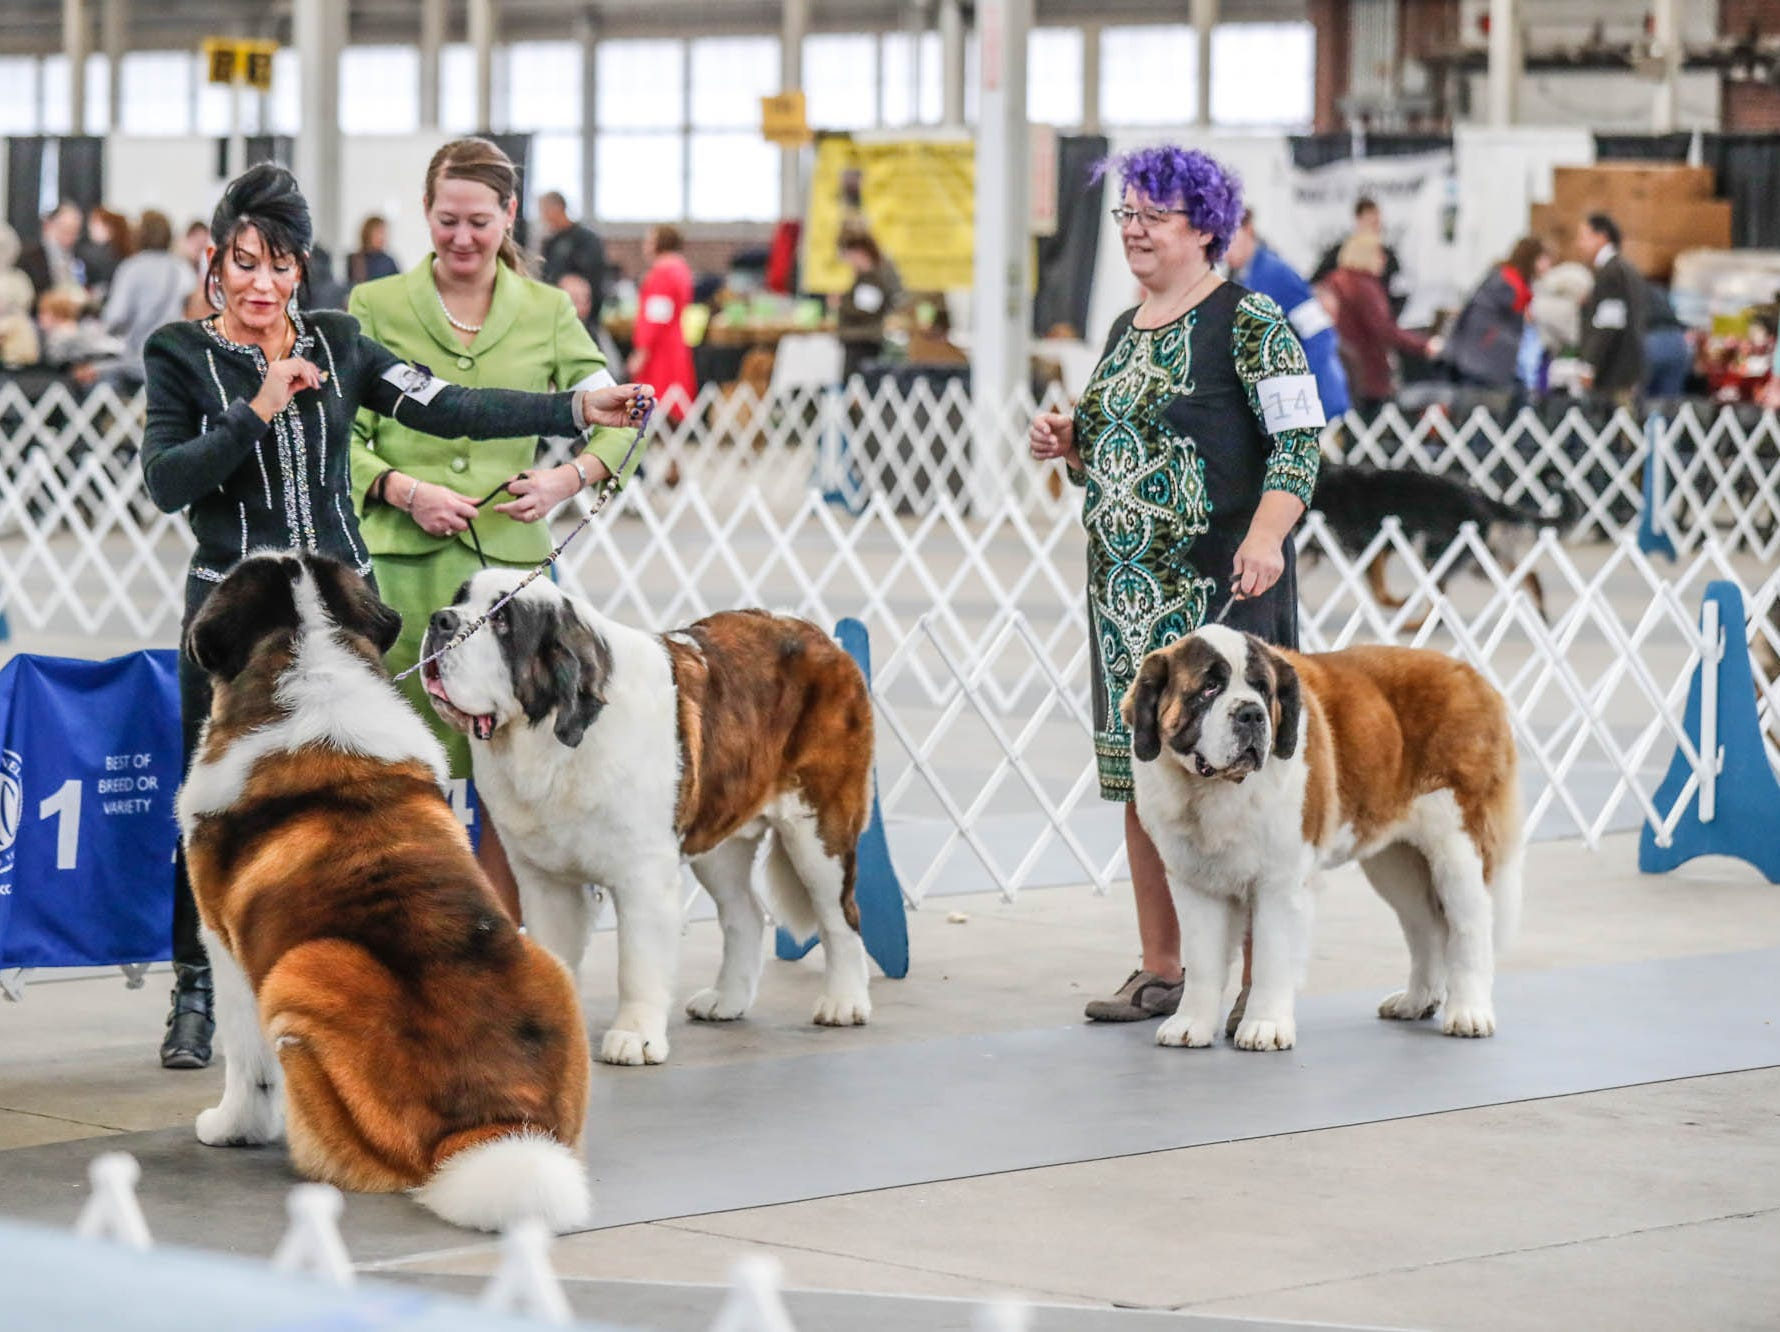 St. Bernards show during the Indy Winter Classic All Breed Dog Show, held at the Indiana State Fairgrounds on Sunday, Feb. 10, 2019.